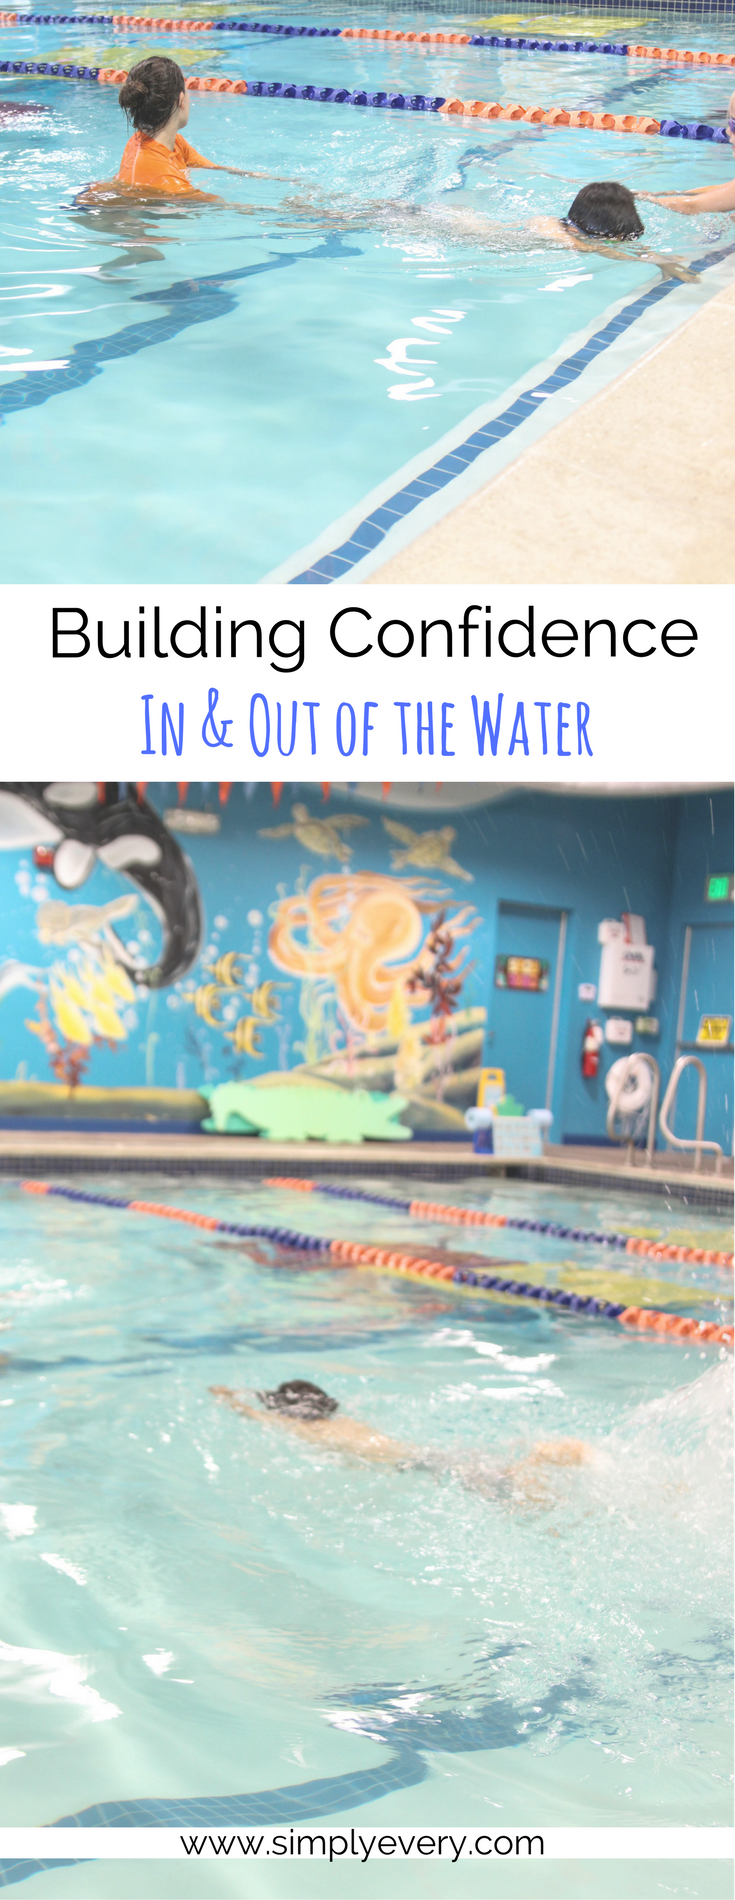 Building Confidence in (and out of) the Water